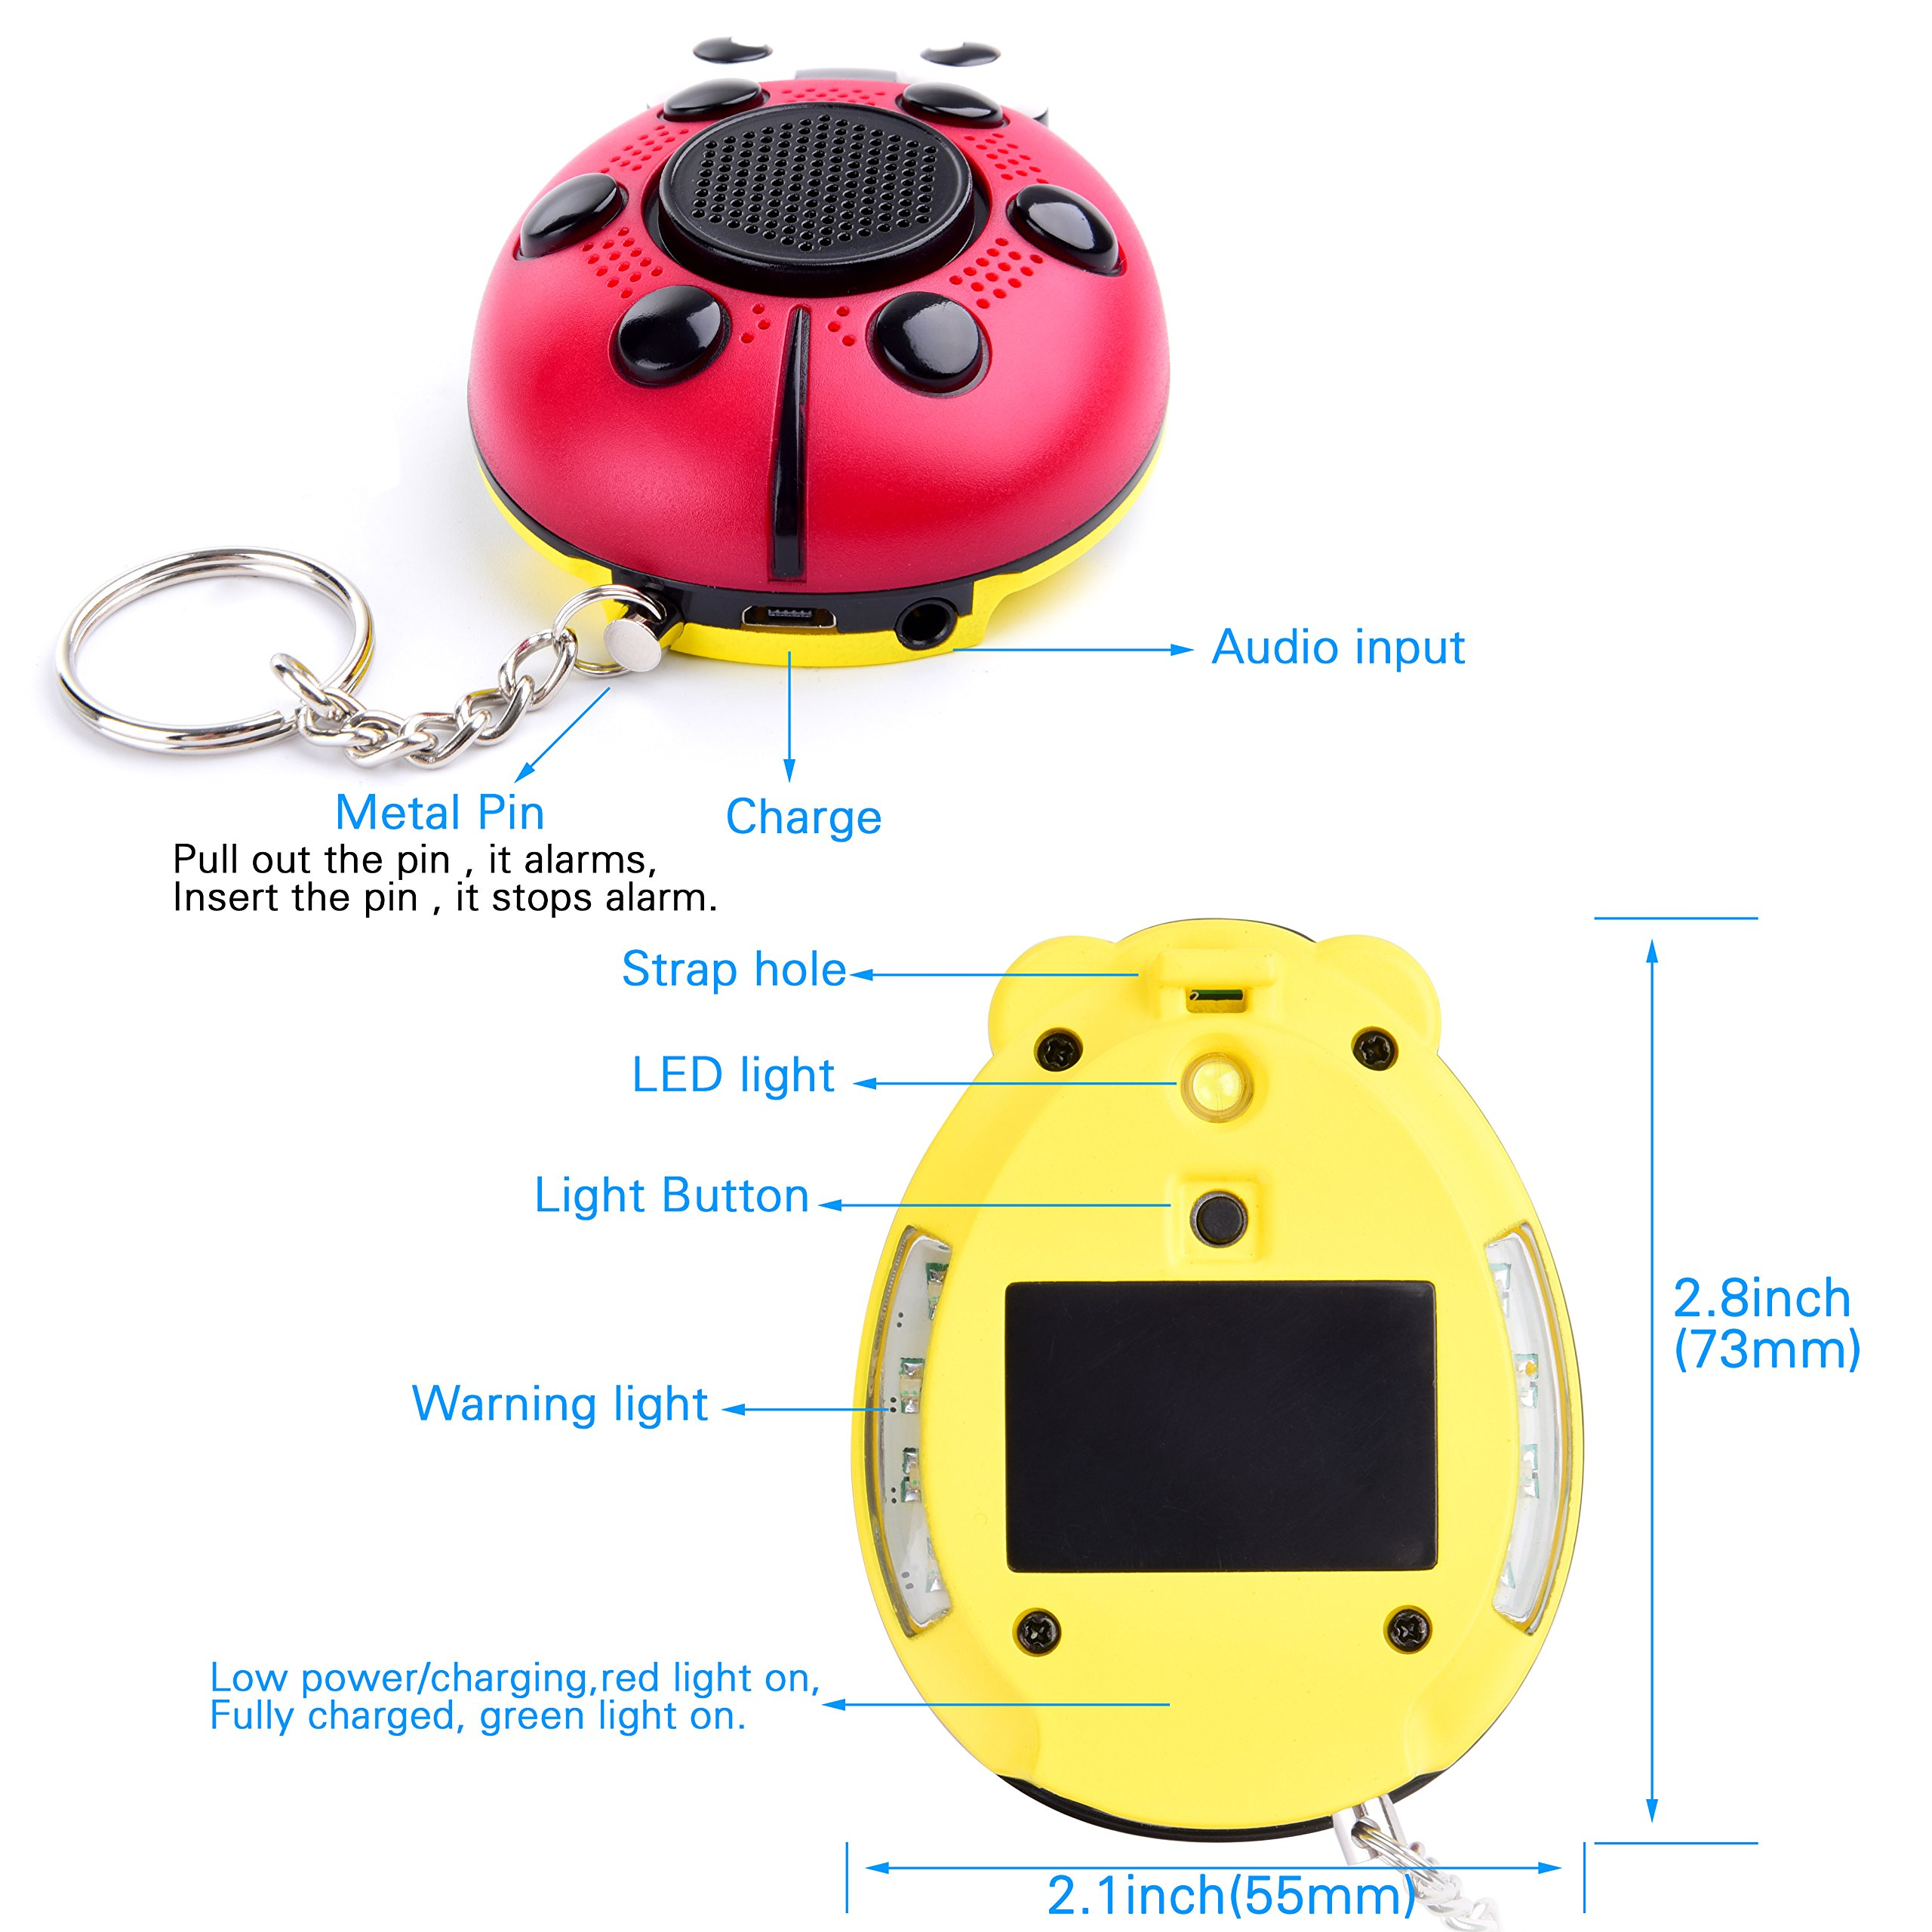 iDaye 130DB SOS with siren song voice Ladybug Emergency Personal alarm keychain,Protection Device with colorful flash work for kids/elderlies/owls and adults,Used as a speaker or electric torch. by iDaye (Image #3)